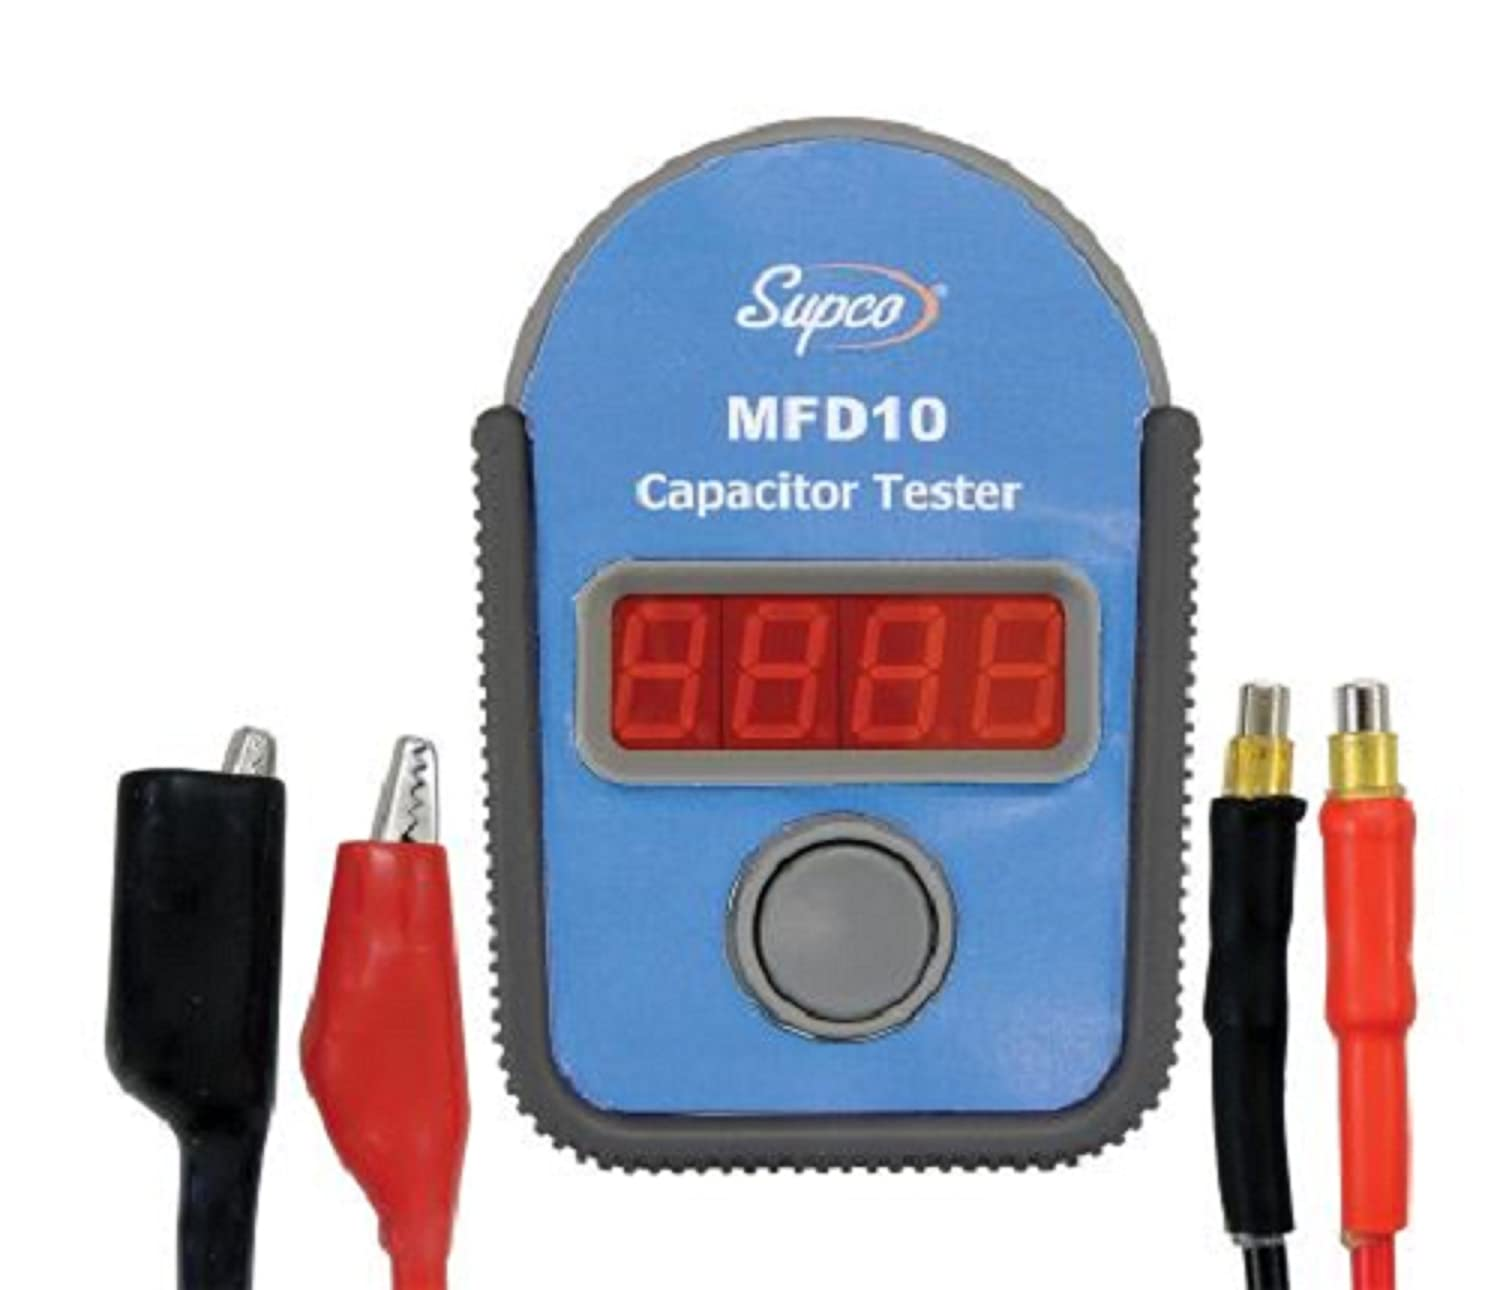 Capacitors Wiring A Capacitor To 2 Amps Supco Mfd10 Digital Tester With Led Display 001 10000mf Range 5